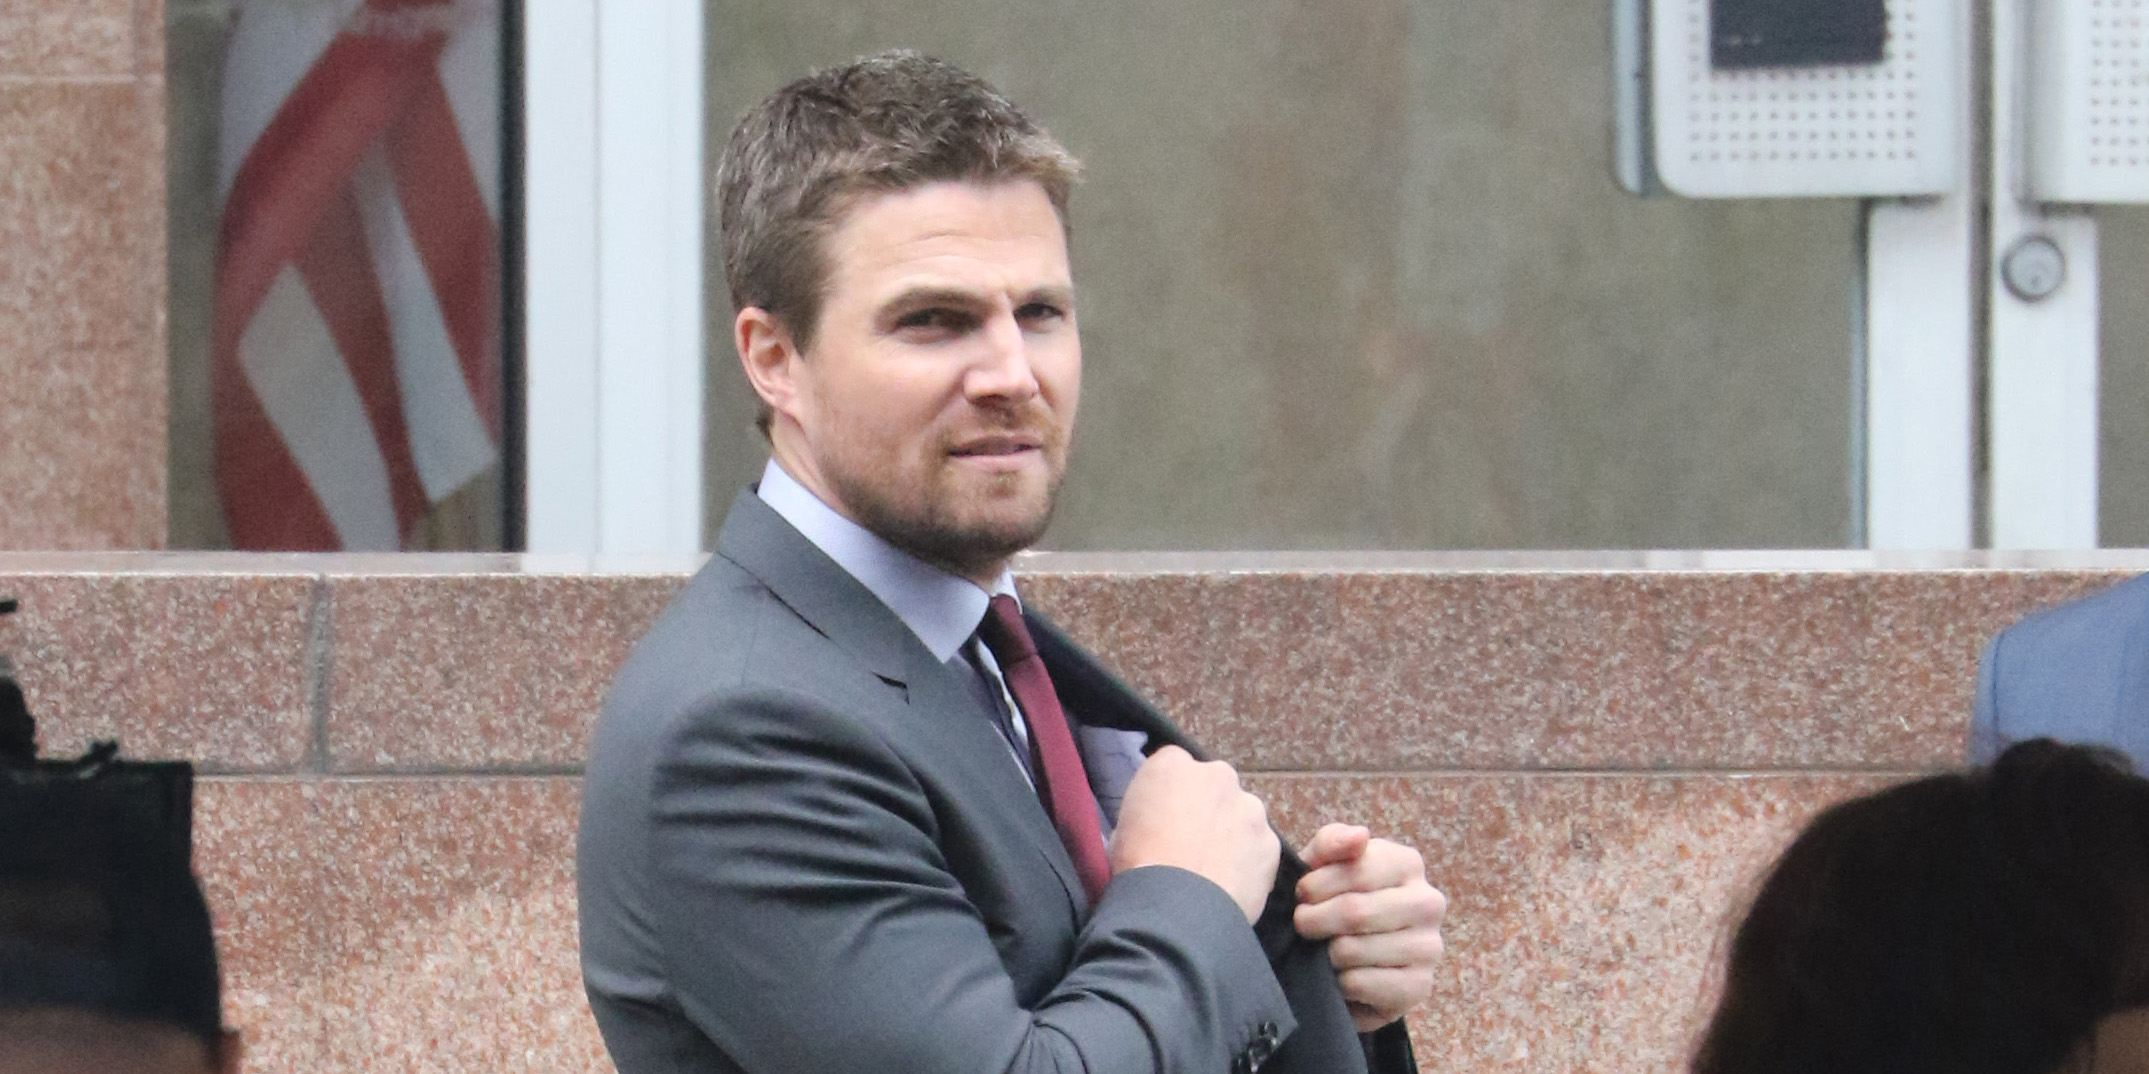 Stephen Amell films Arrow at downtown Vancouver's old Canada Post building (PHOTOS)